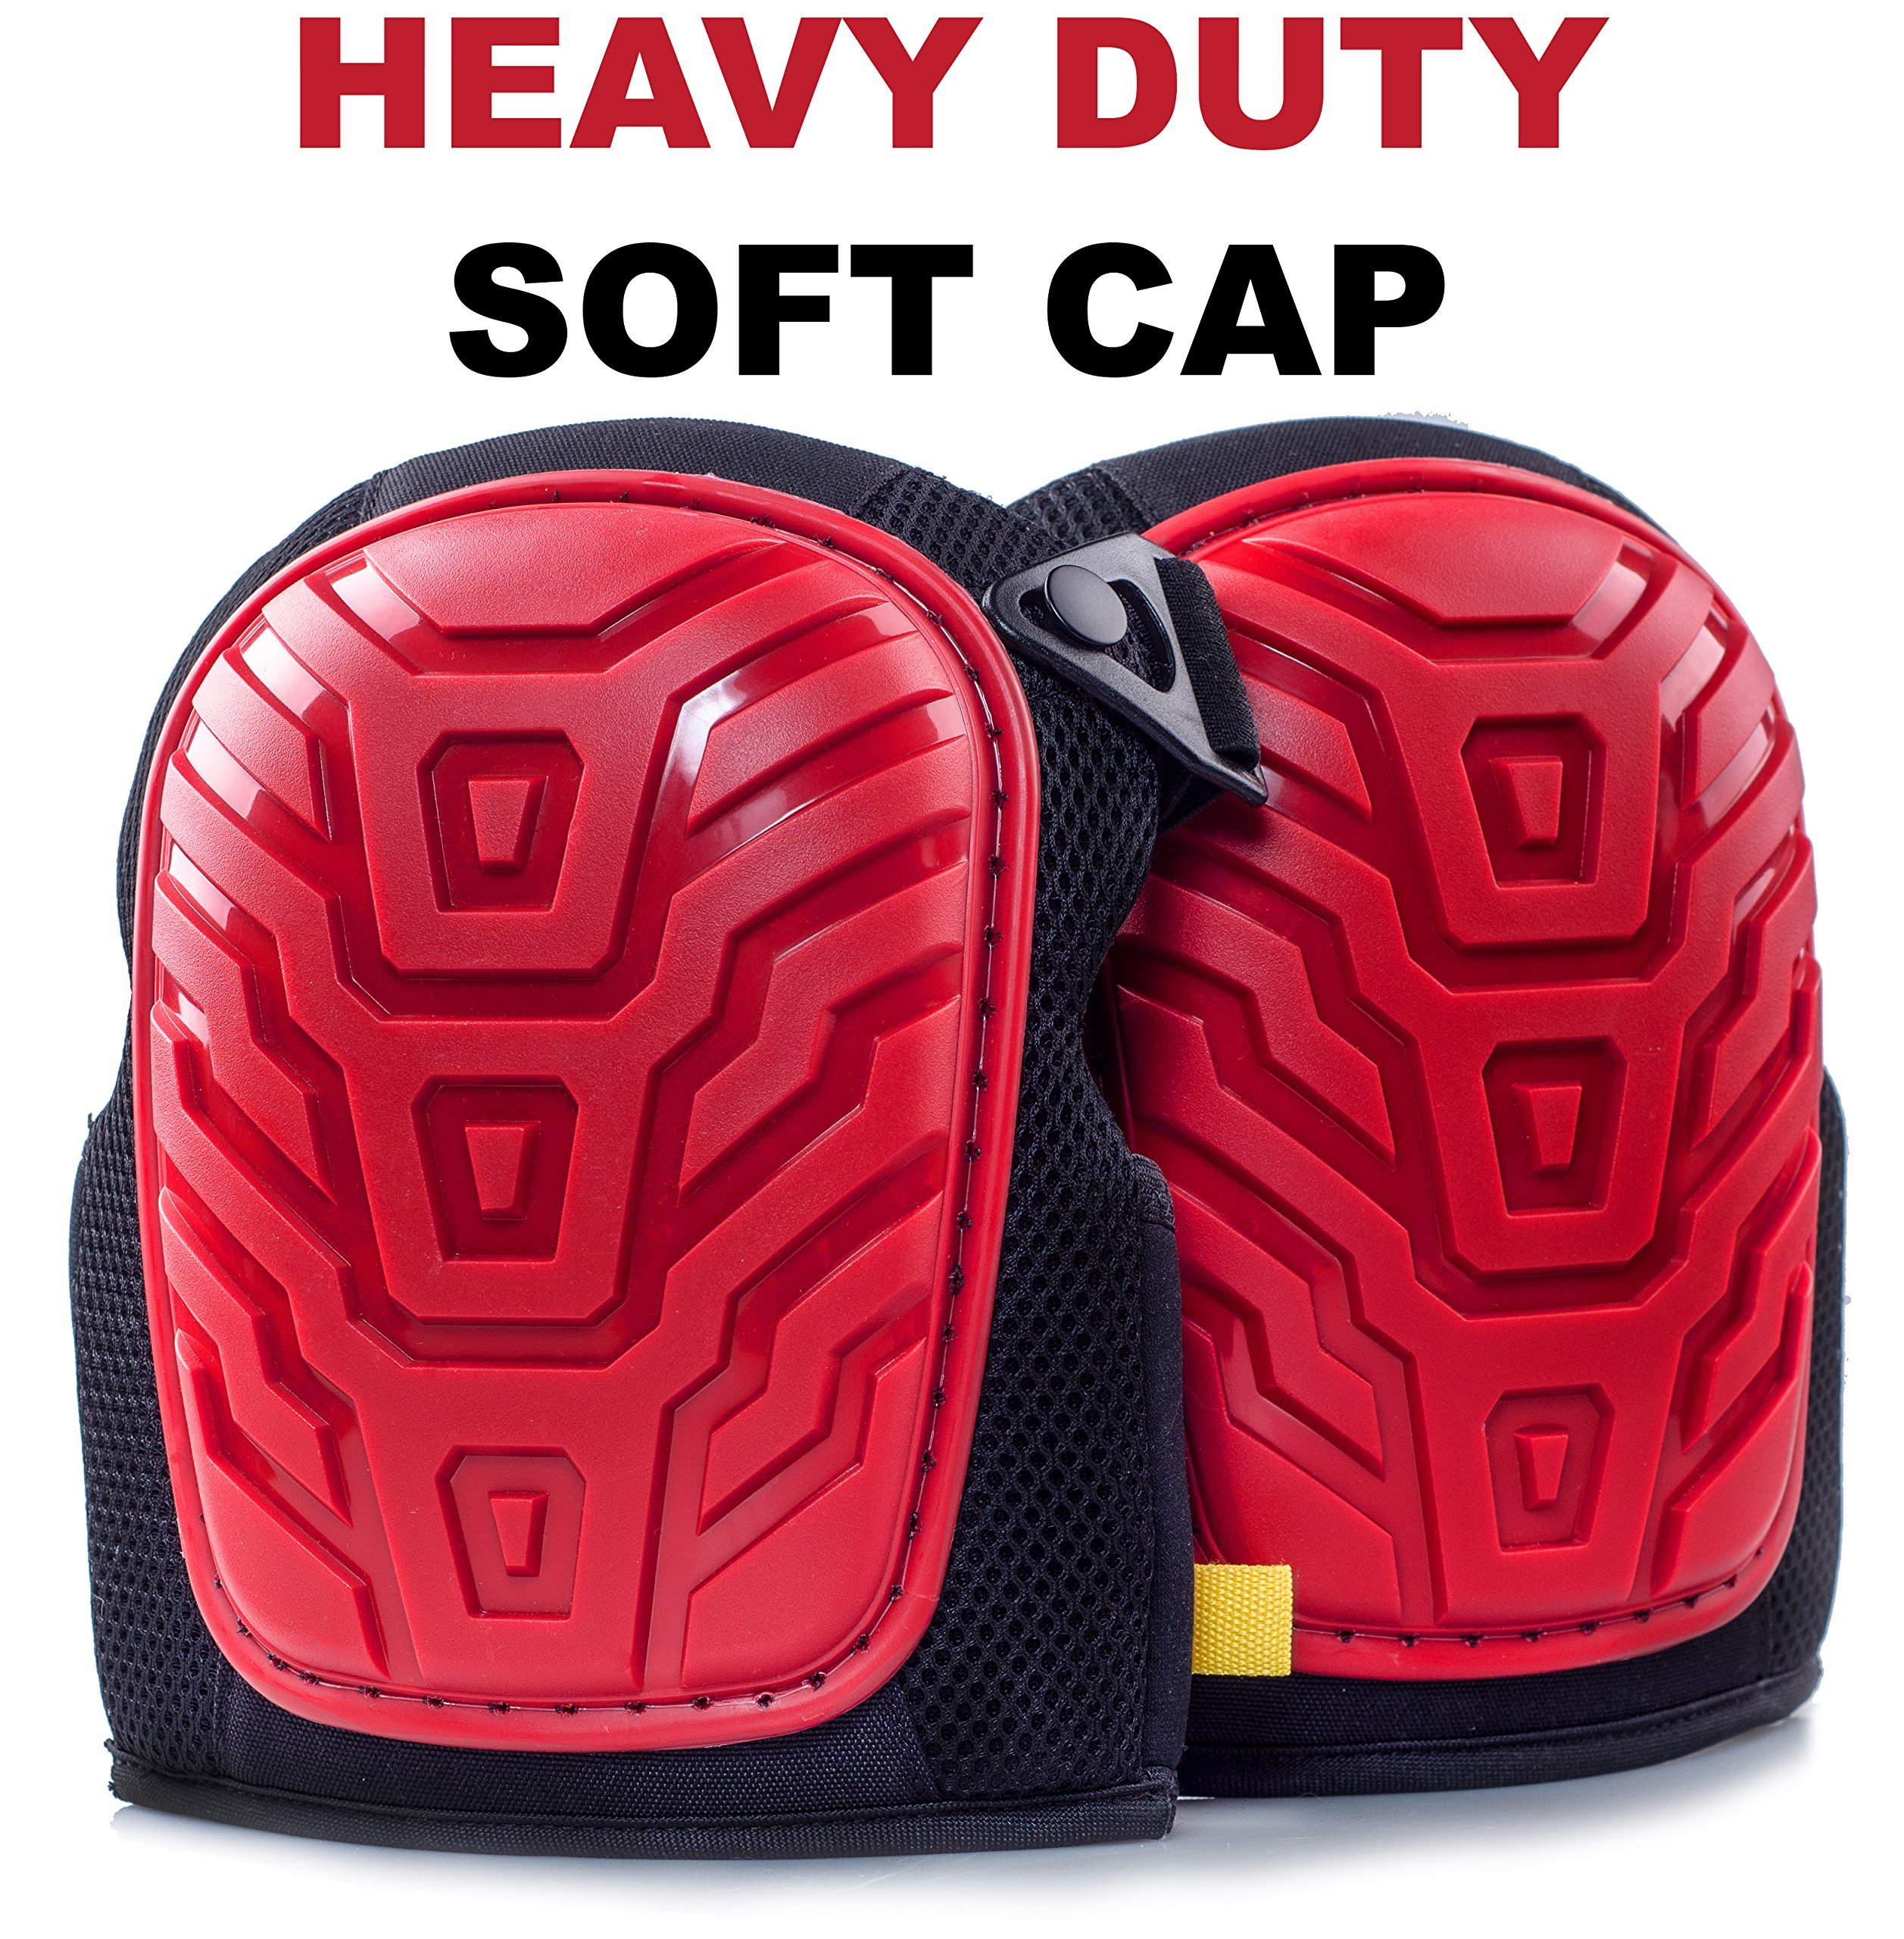 Professional Knee Pads - Easy to WEAR Heavy Duty Memory Foam Padding, Comfortable Gel Cushion, Strong Straps FITS All, Adjustable Easy-Fix Clips - Best for Gardening, Construction, Flooring by Kutir (Image #5)